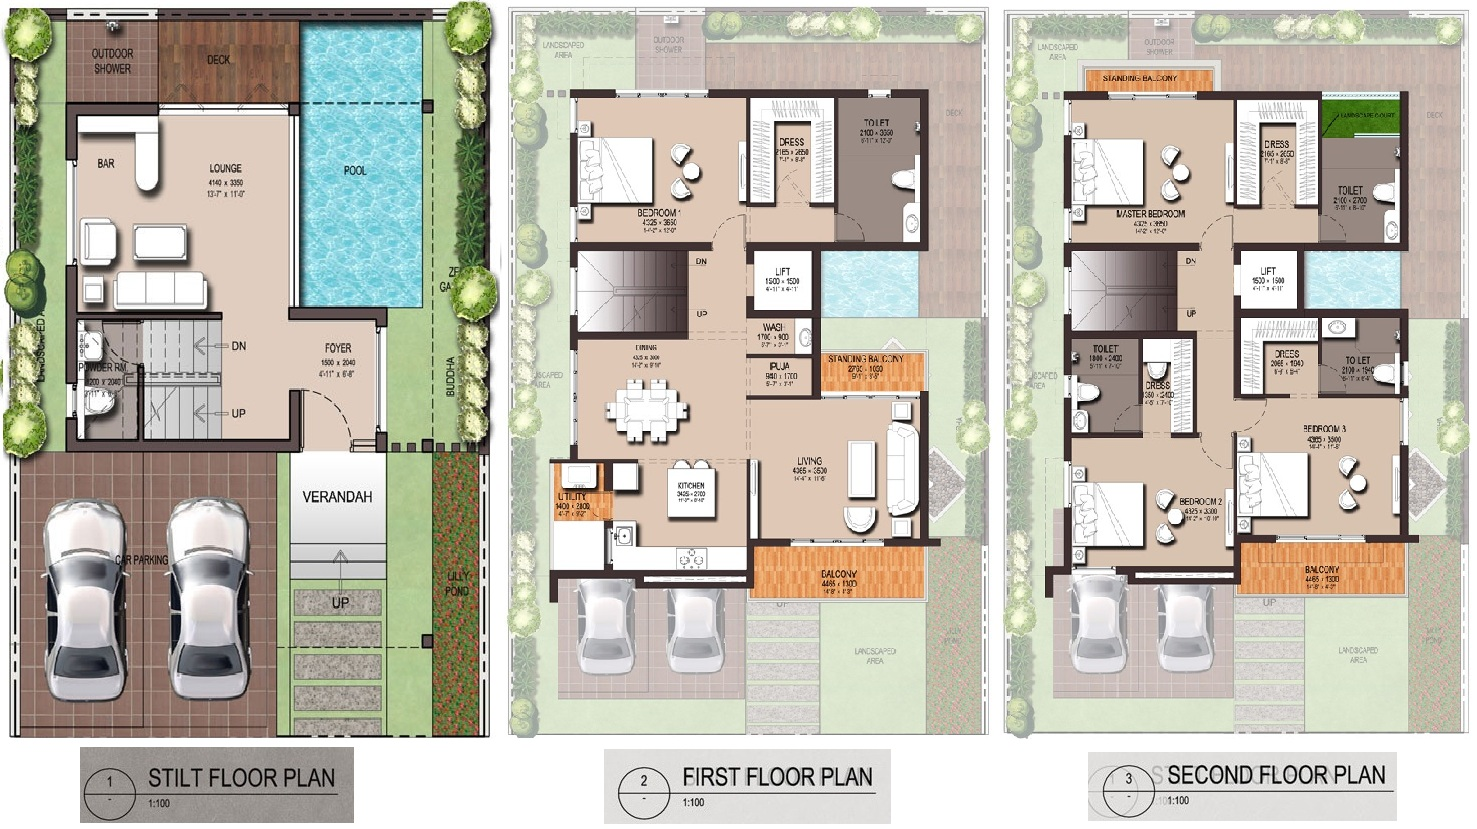 Artha property builders artha zen floor plan artha zen for Zen garden designs plan